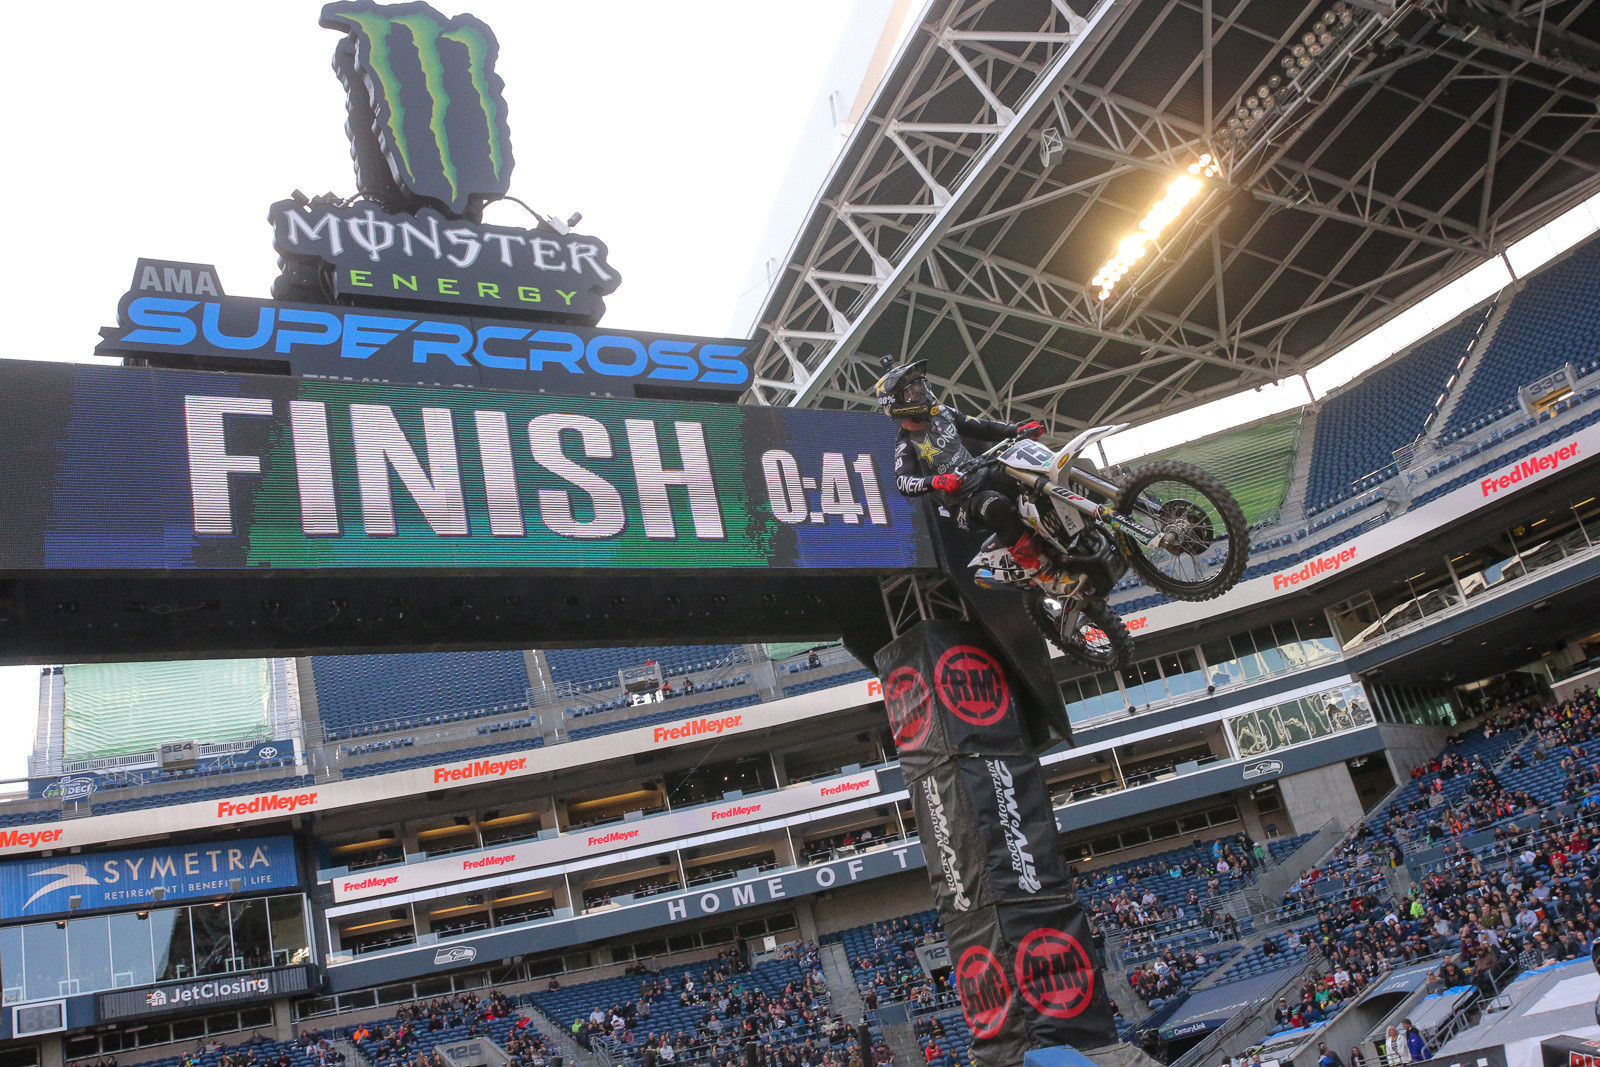 Top qualifiers in the 450 class? Dean Wilson grabbed the top spot...